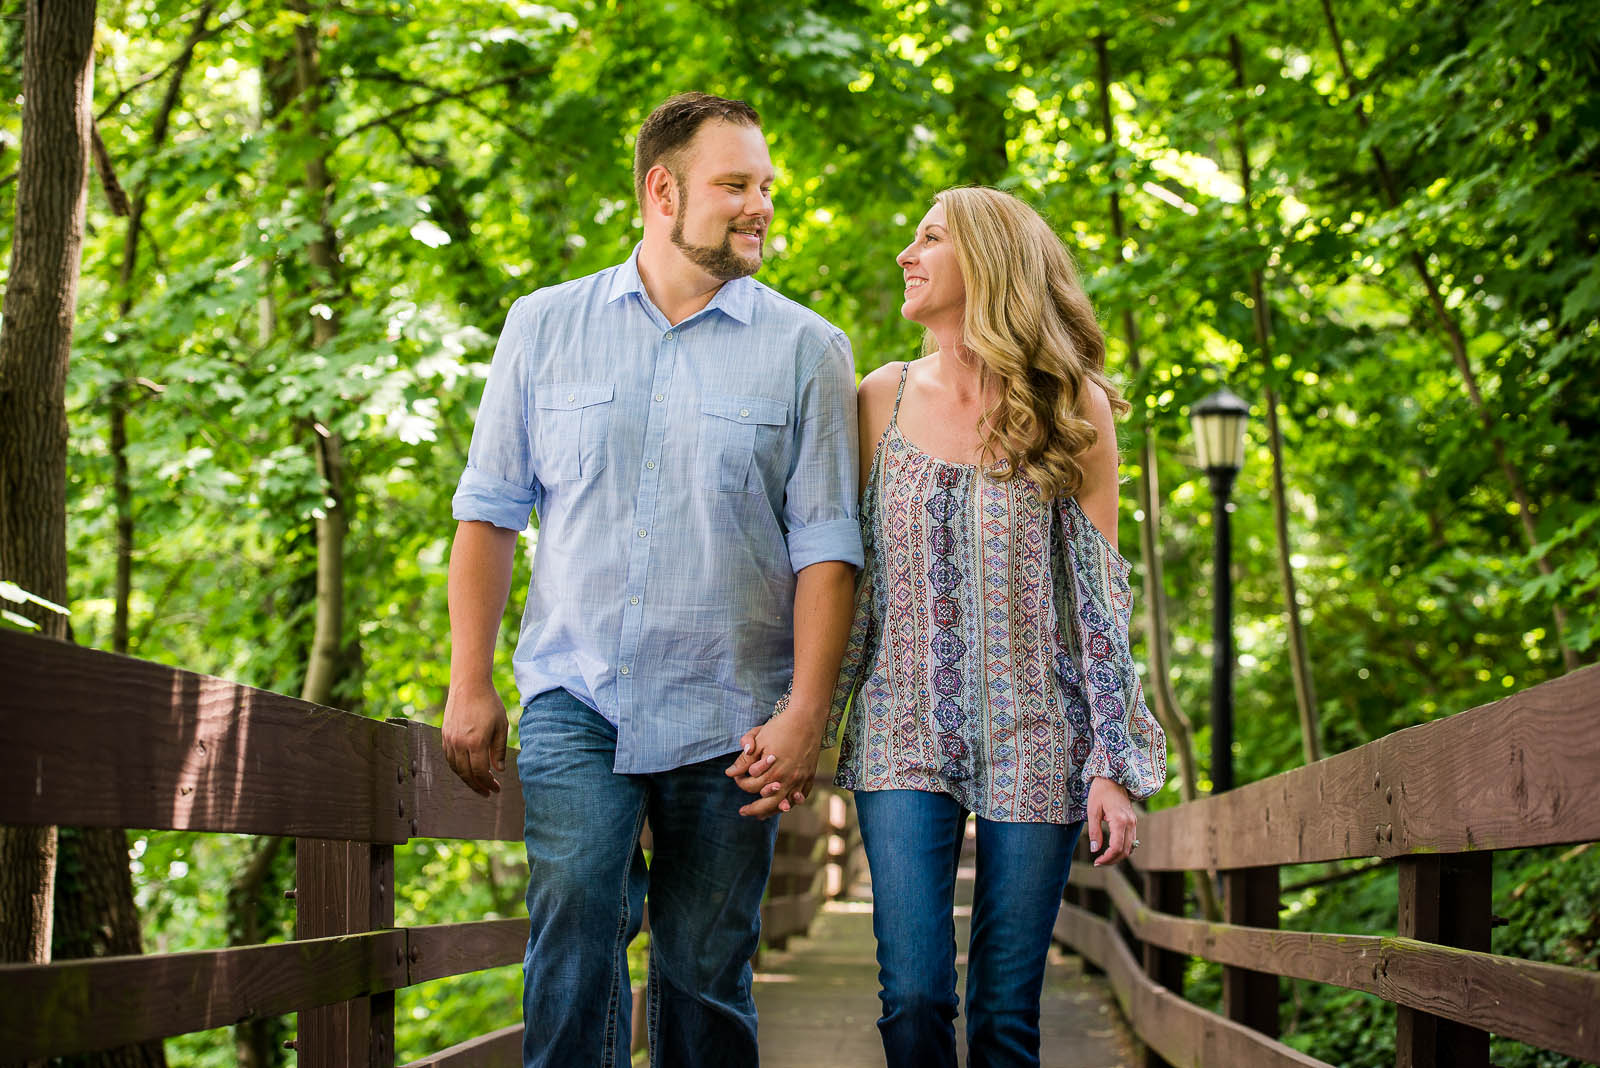 Eric_and_Christy_Photography_Blog_Kelly_Matt_Engagement-12